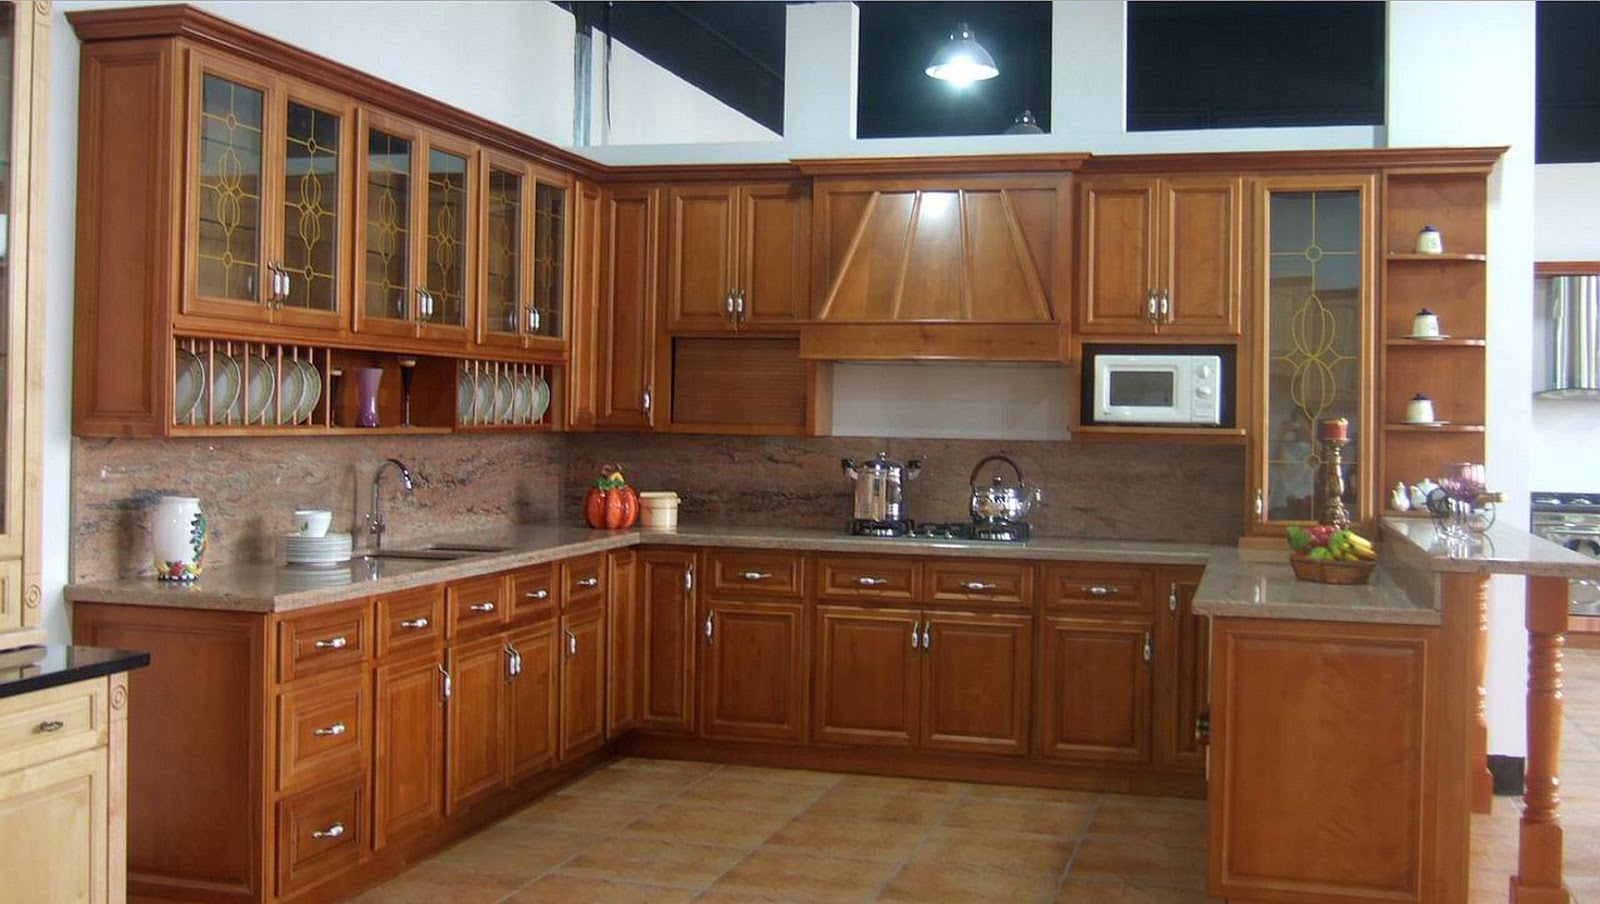 Kitchen Cabinet Hanging Tips For Choosing Minimalist Hanging Kitchen Cabinets